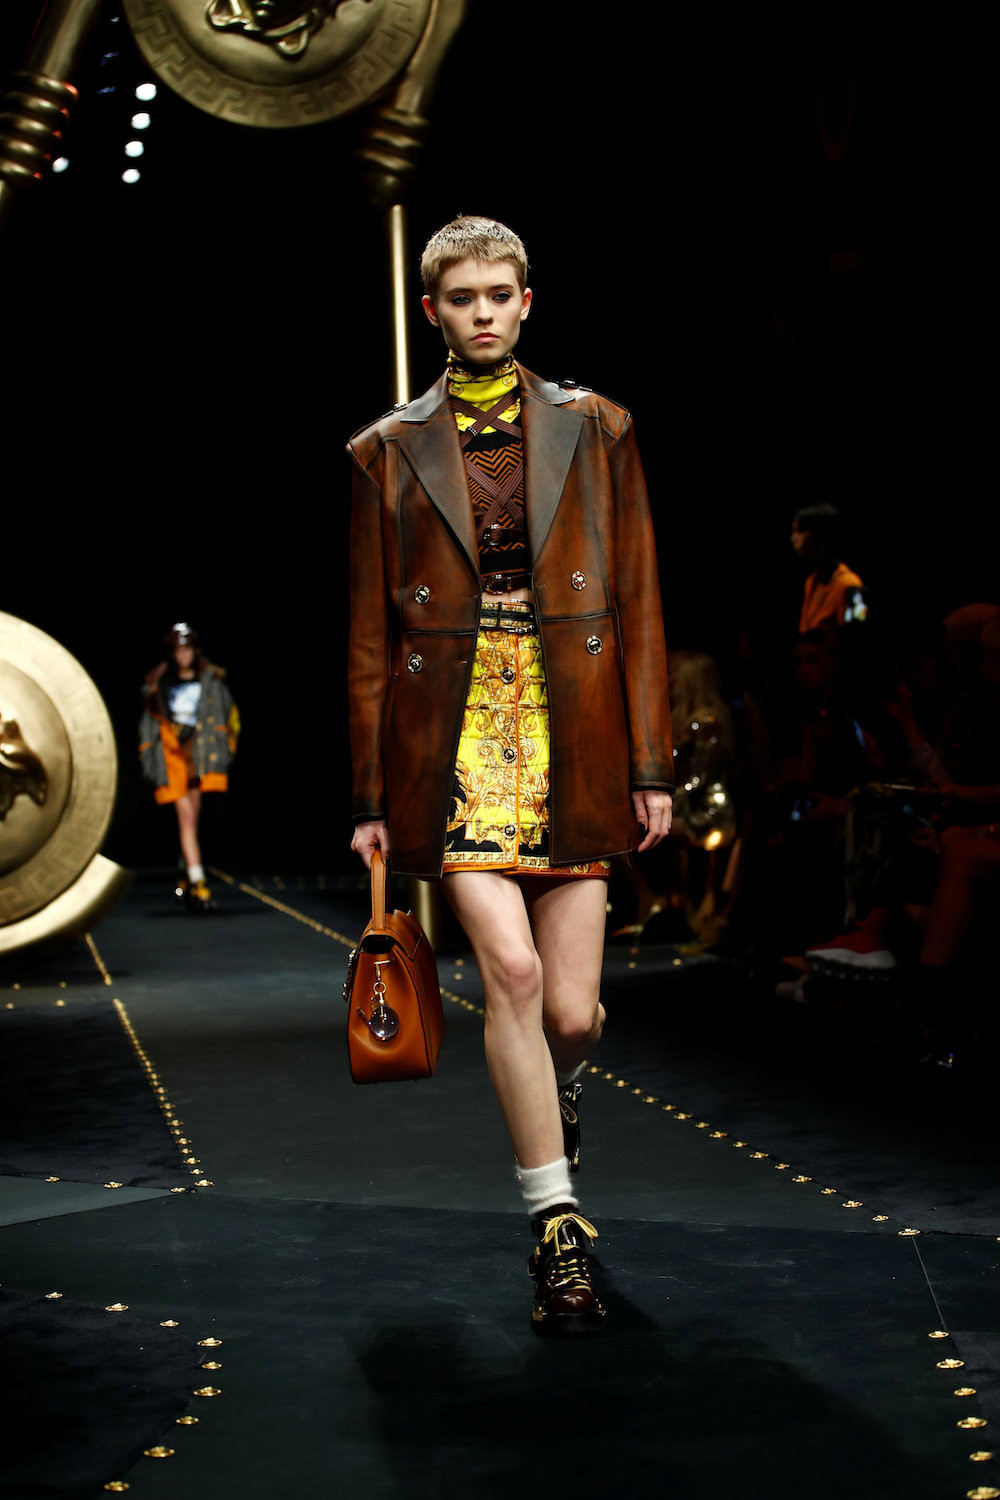 ede34e222b A model presents a creation by Versace during the Milan Fashion Week in  Milan